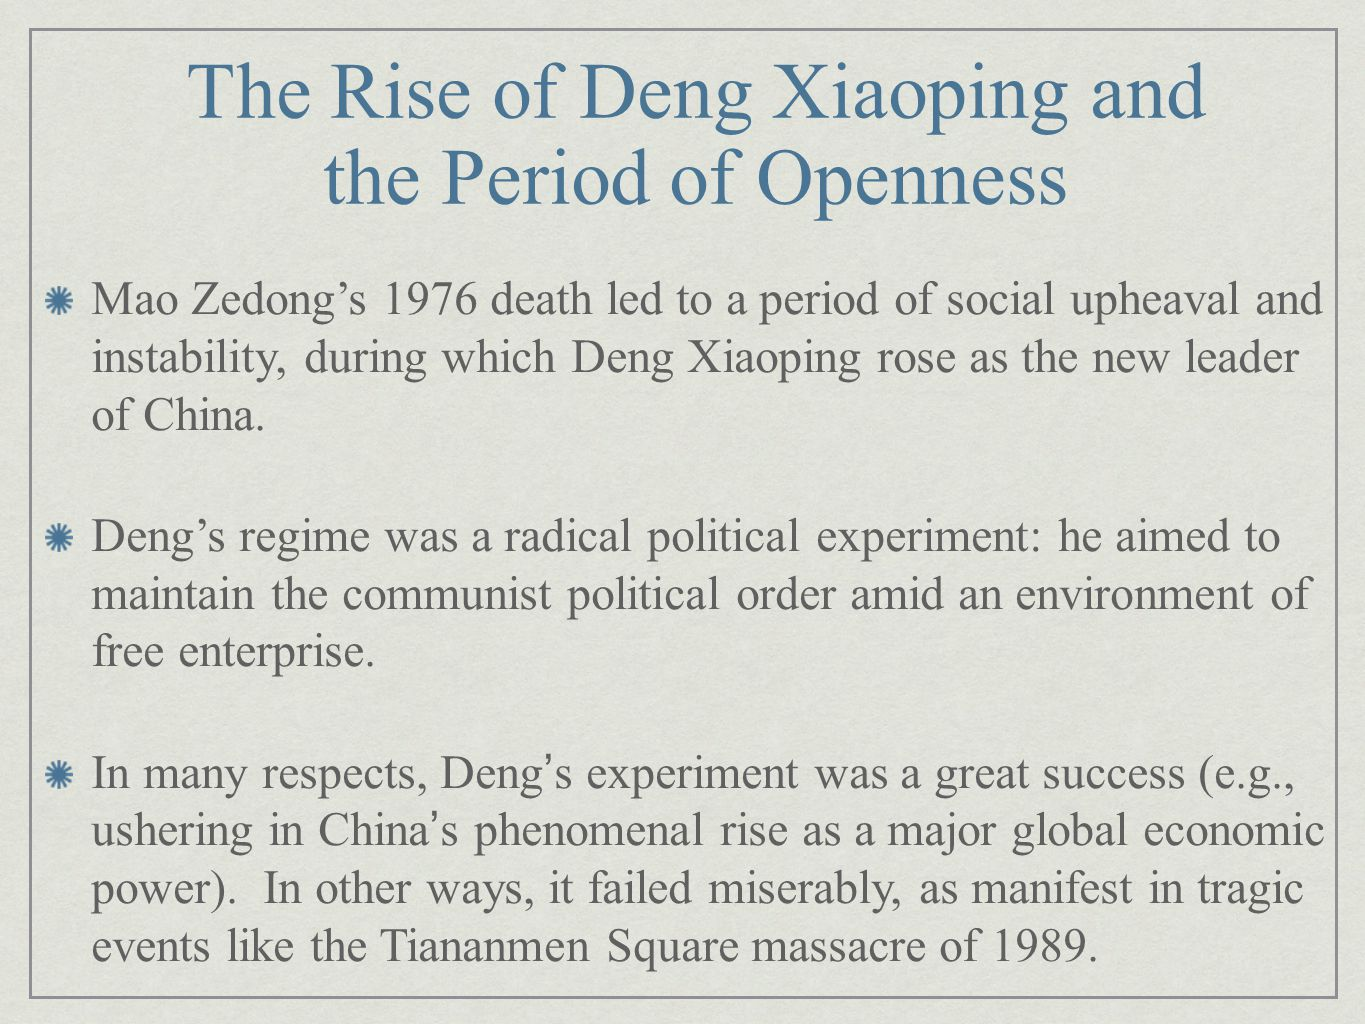 The Rise of Deng Xiaoping and the Period of Openness